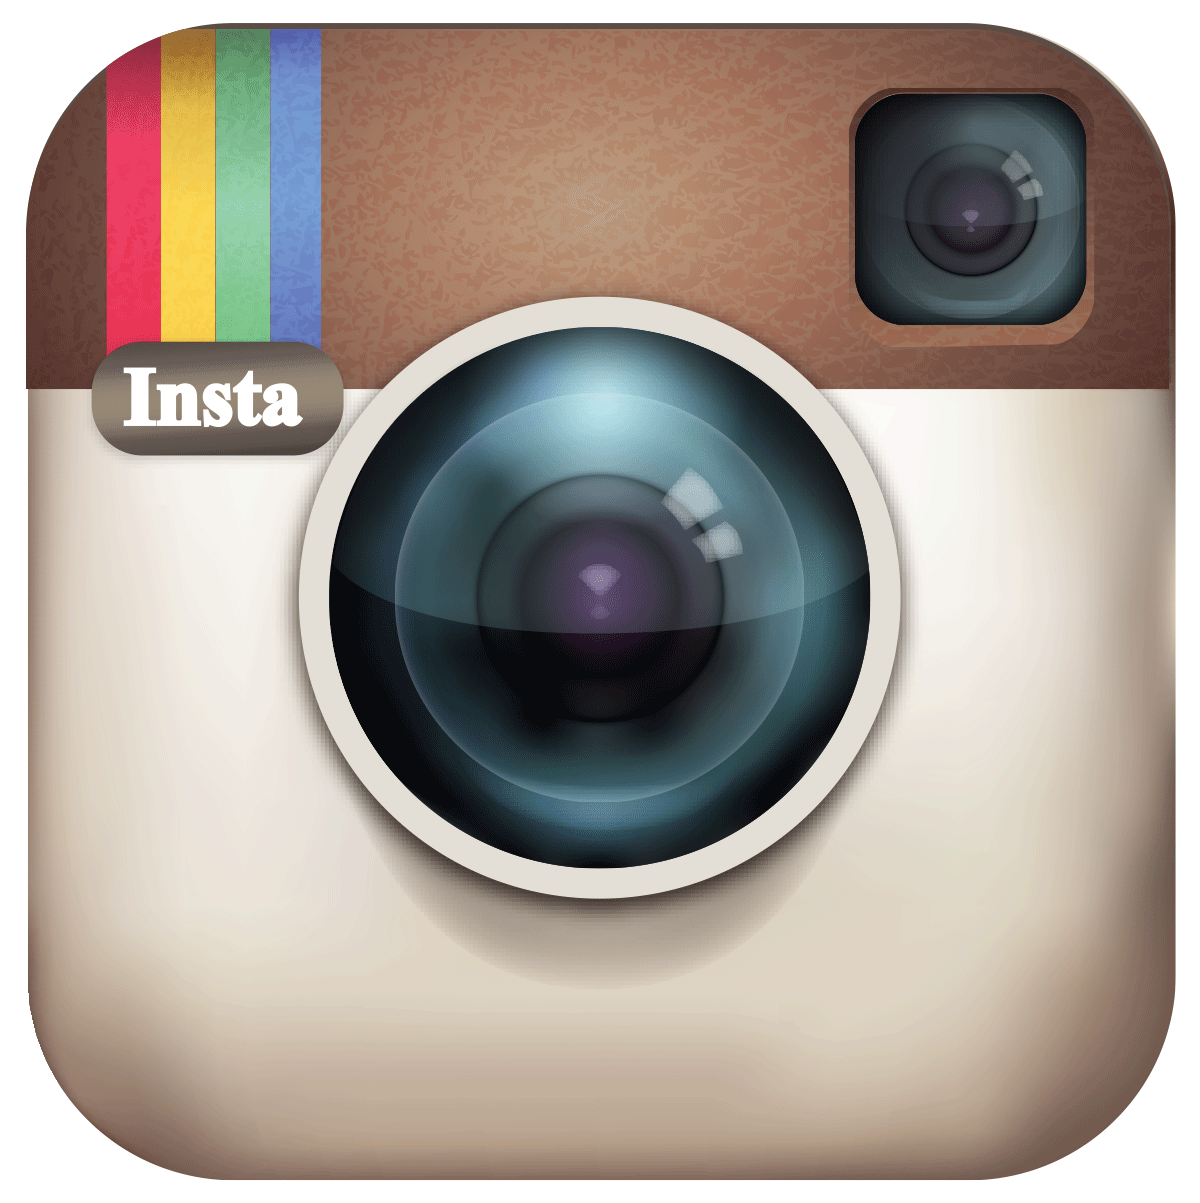 http://www.freeiconspng.com/uploads/logo-2012-instagram-adds-50-million-photos-in-august-instagram-logo-18.png